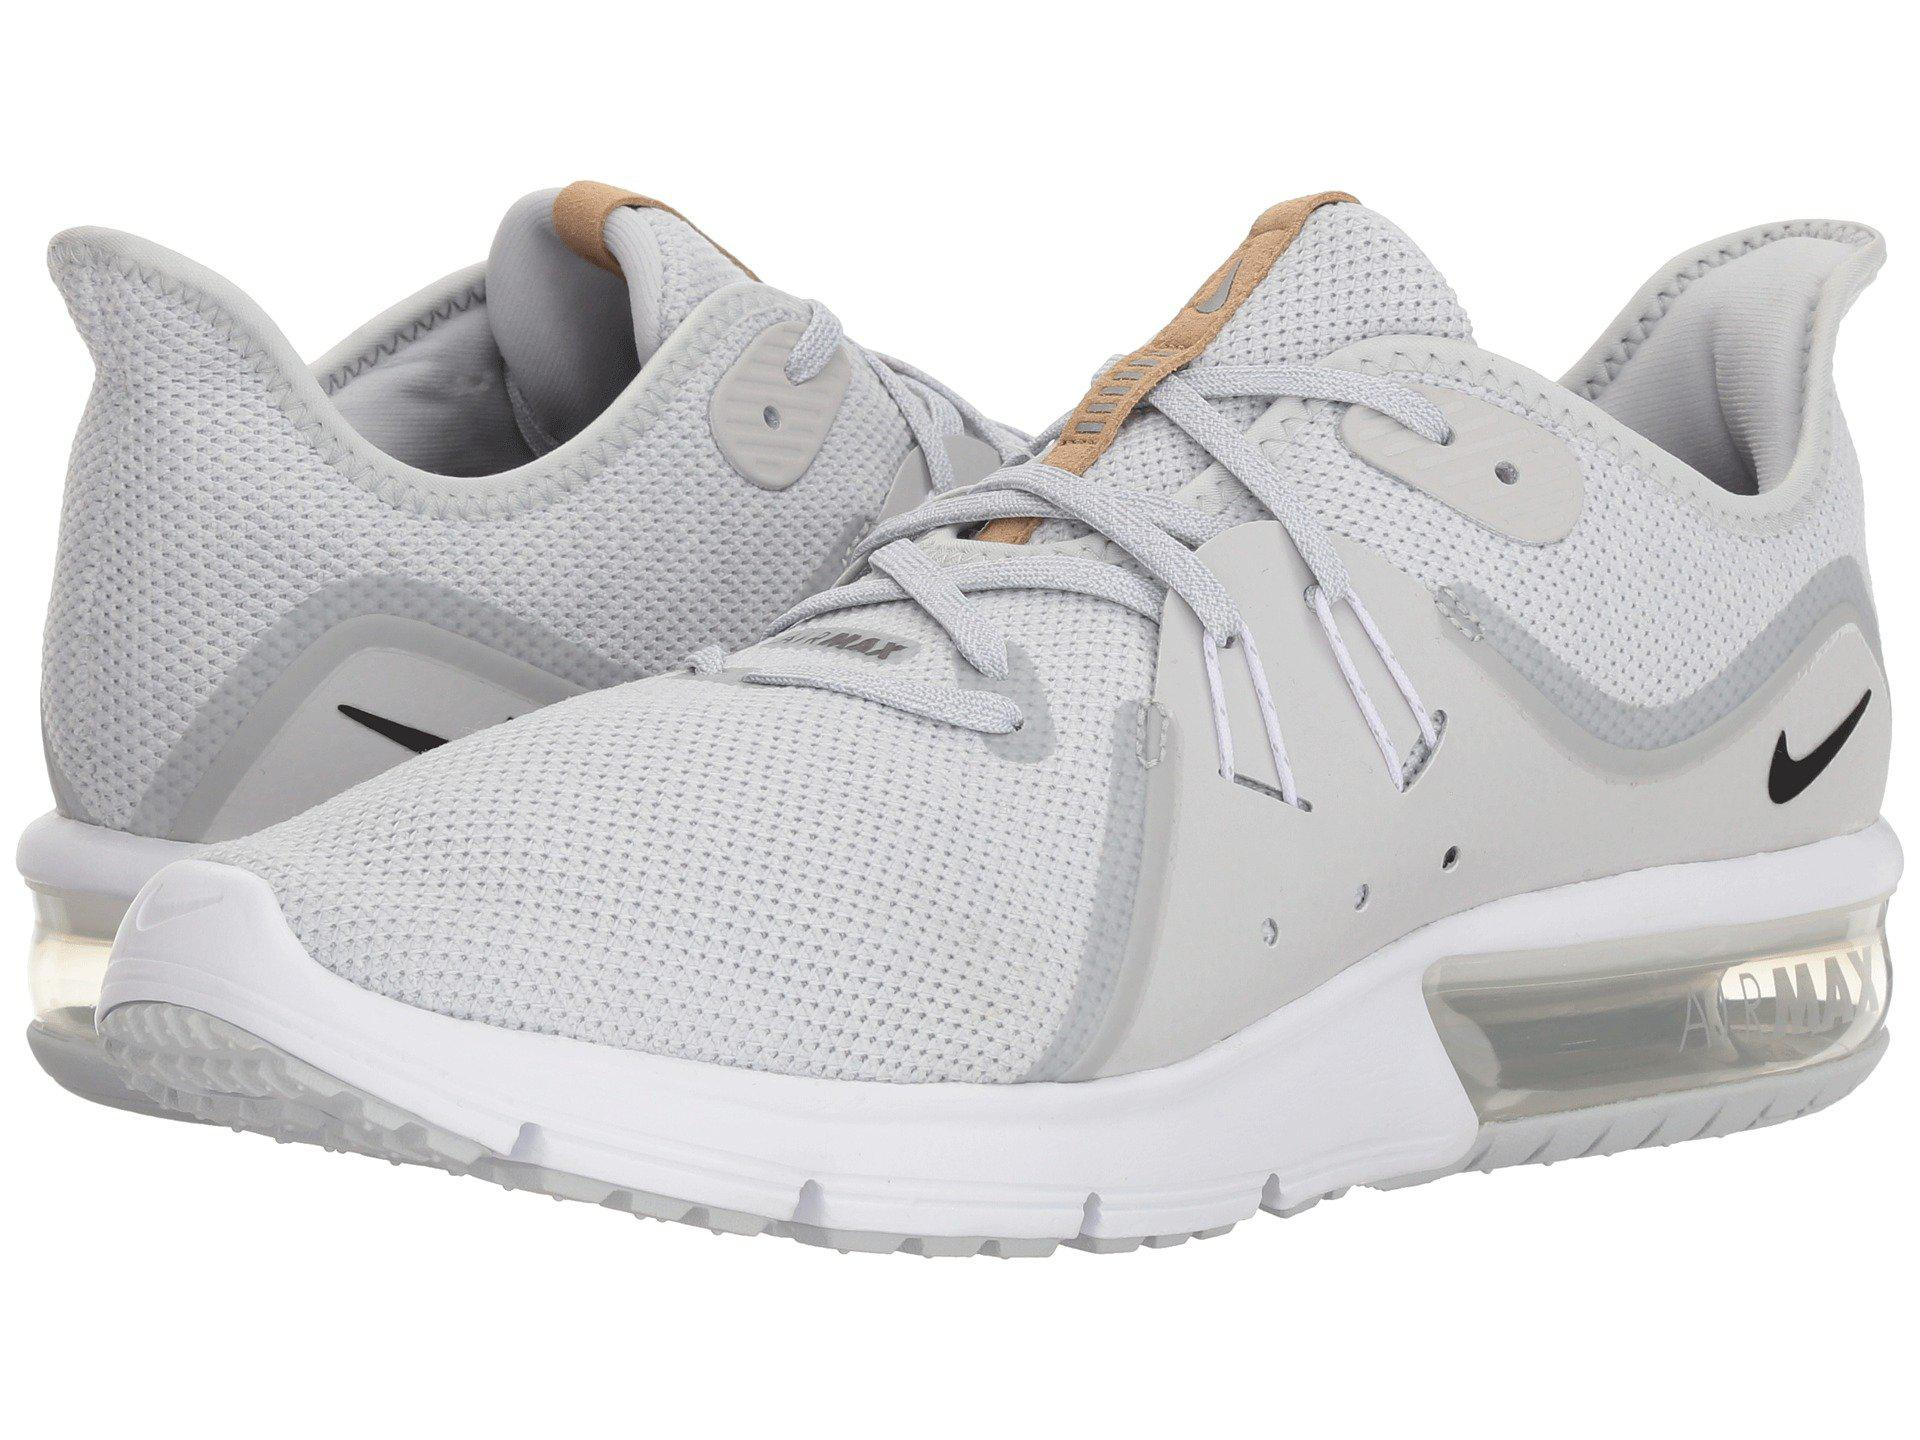 aa215eb9e94 Lyst - Nike Air Max Sequent 3 in White for Men - Save 2%